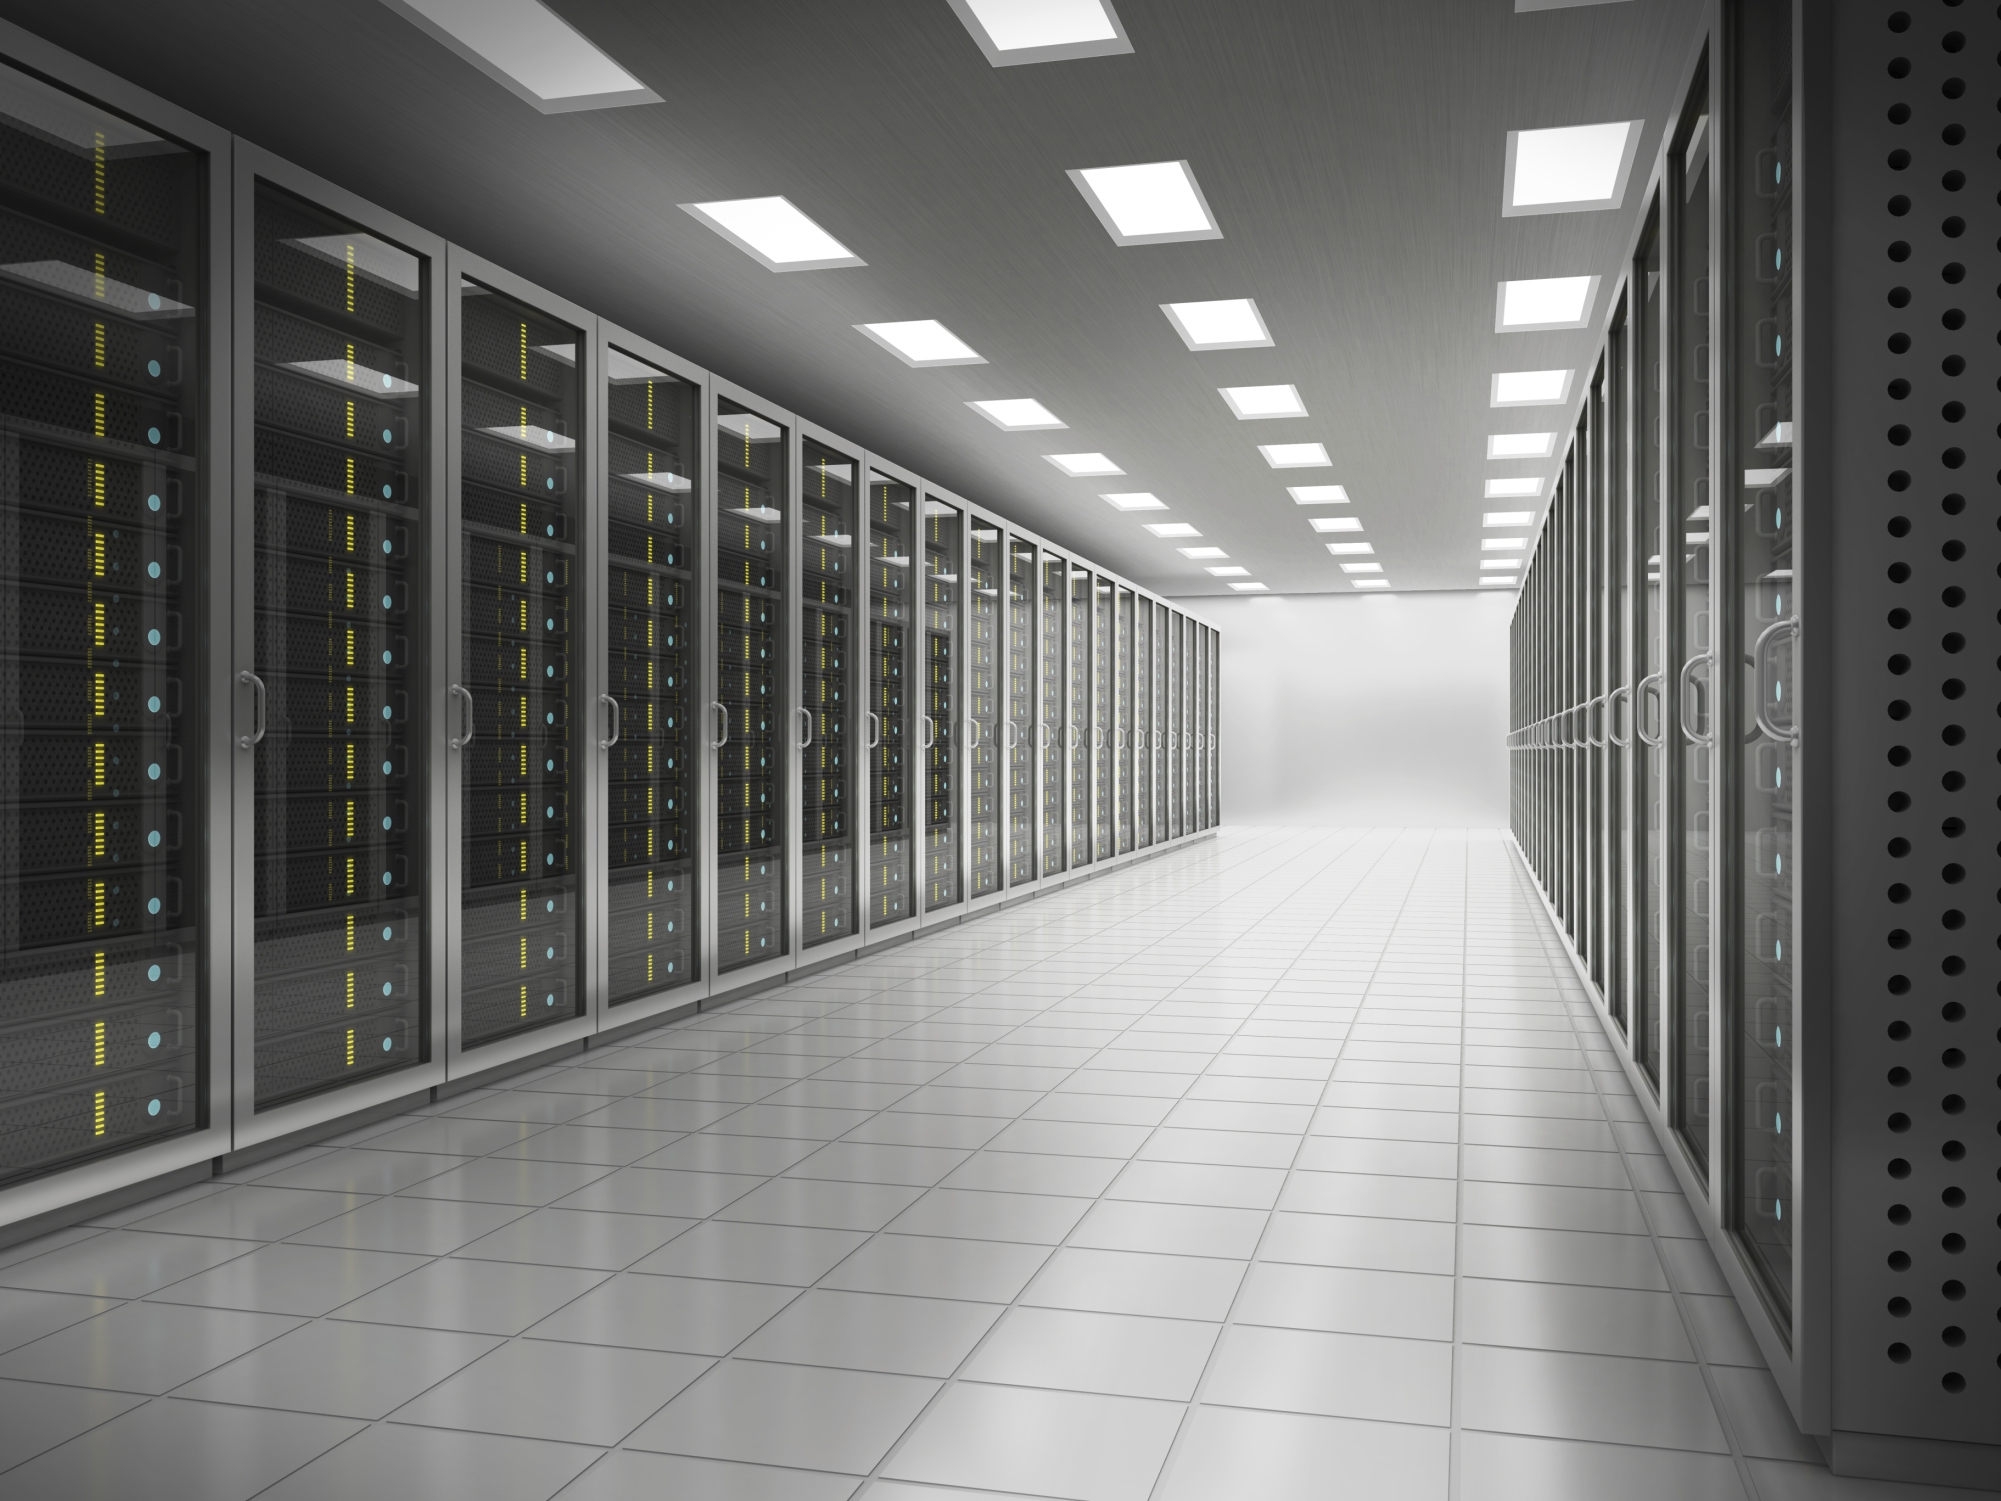 Hadoop-based hardware, software, and services support much of the growth in big-data expenditures.